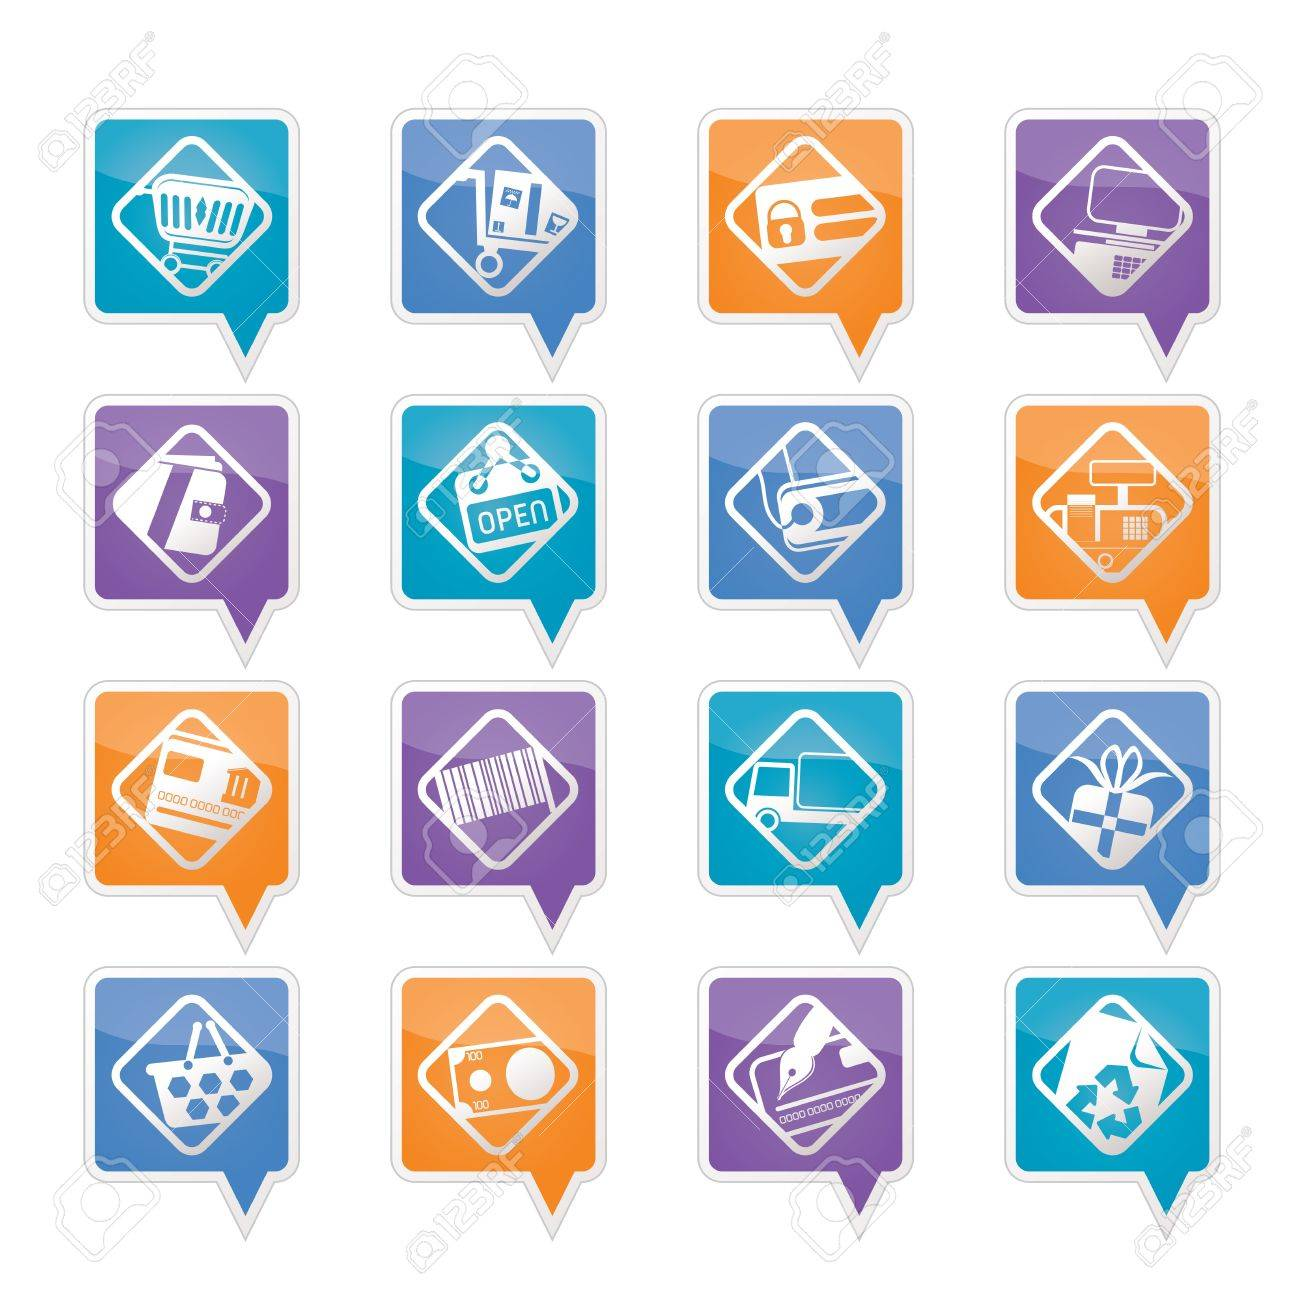 Online Shop, e-commerce and web site icons - Vector Icon Set Stock Vector - 11780359